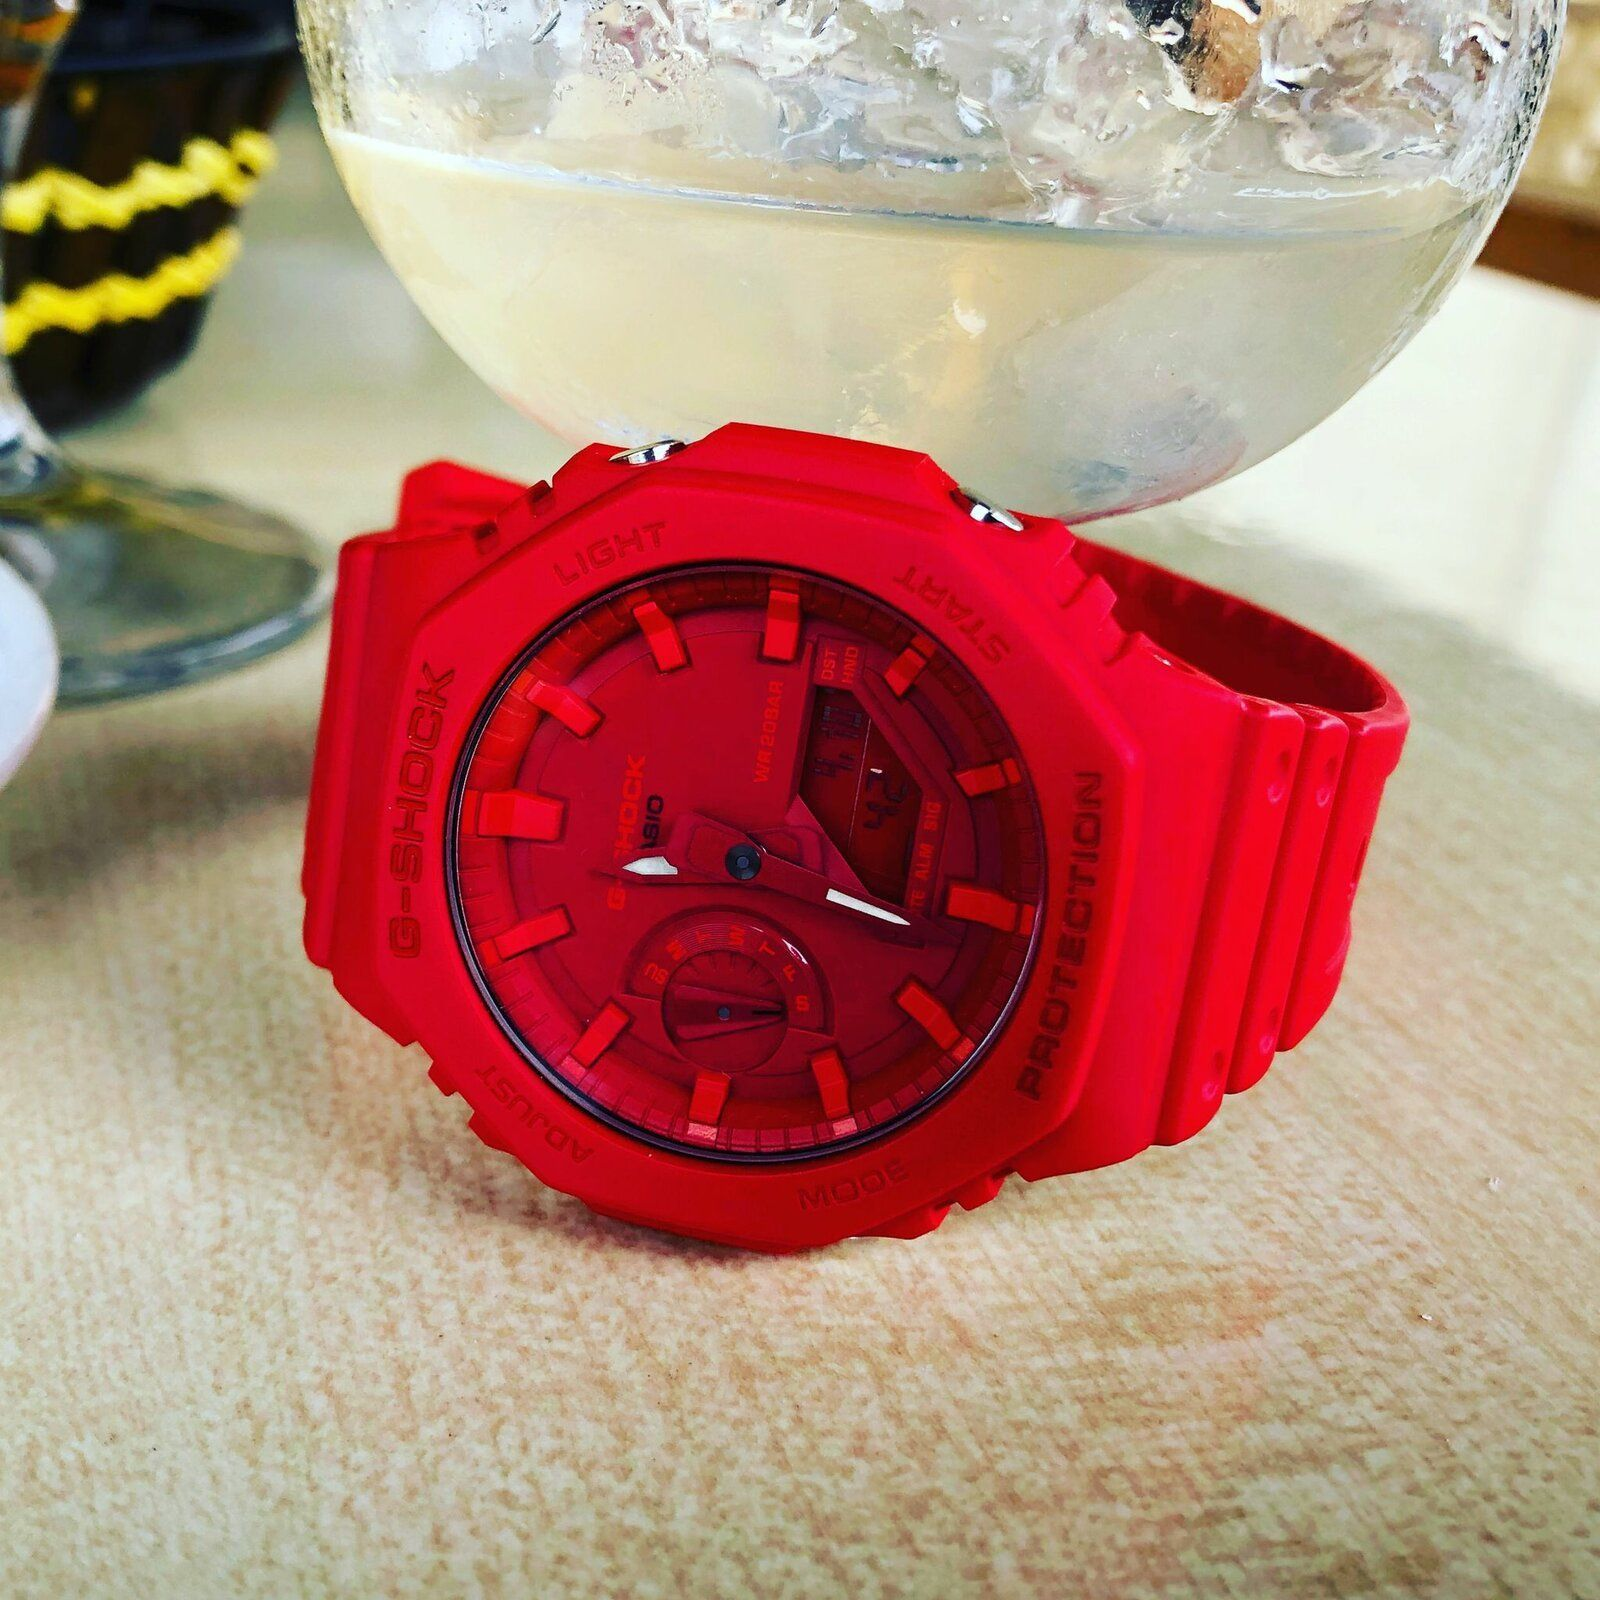 21041050 100 CASIO G_SHOCK GA2100 4EAR RED OAK.jpg